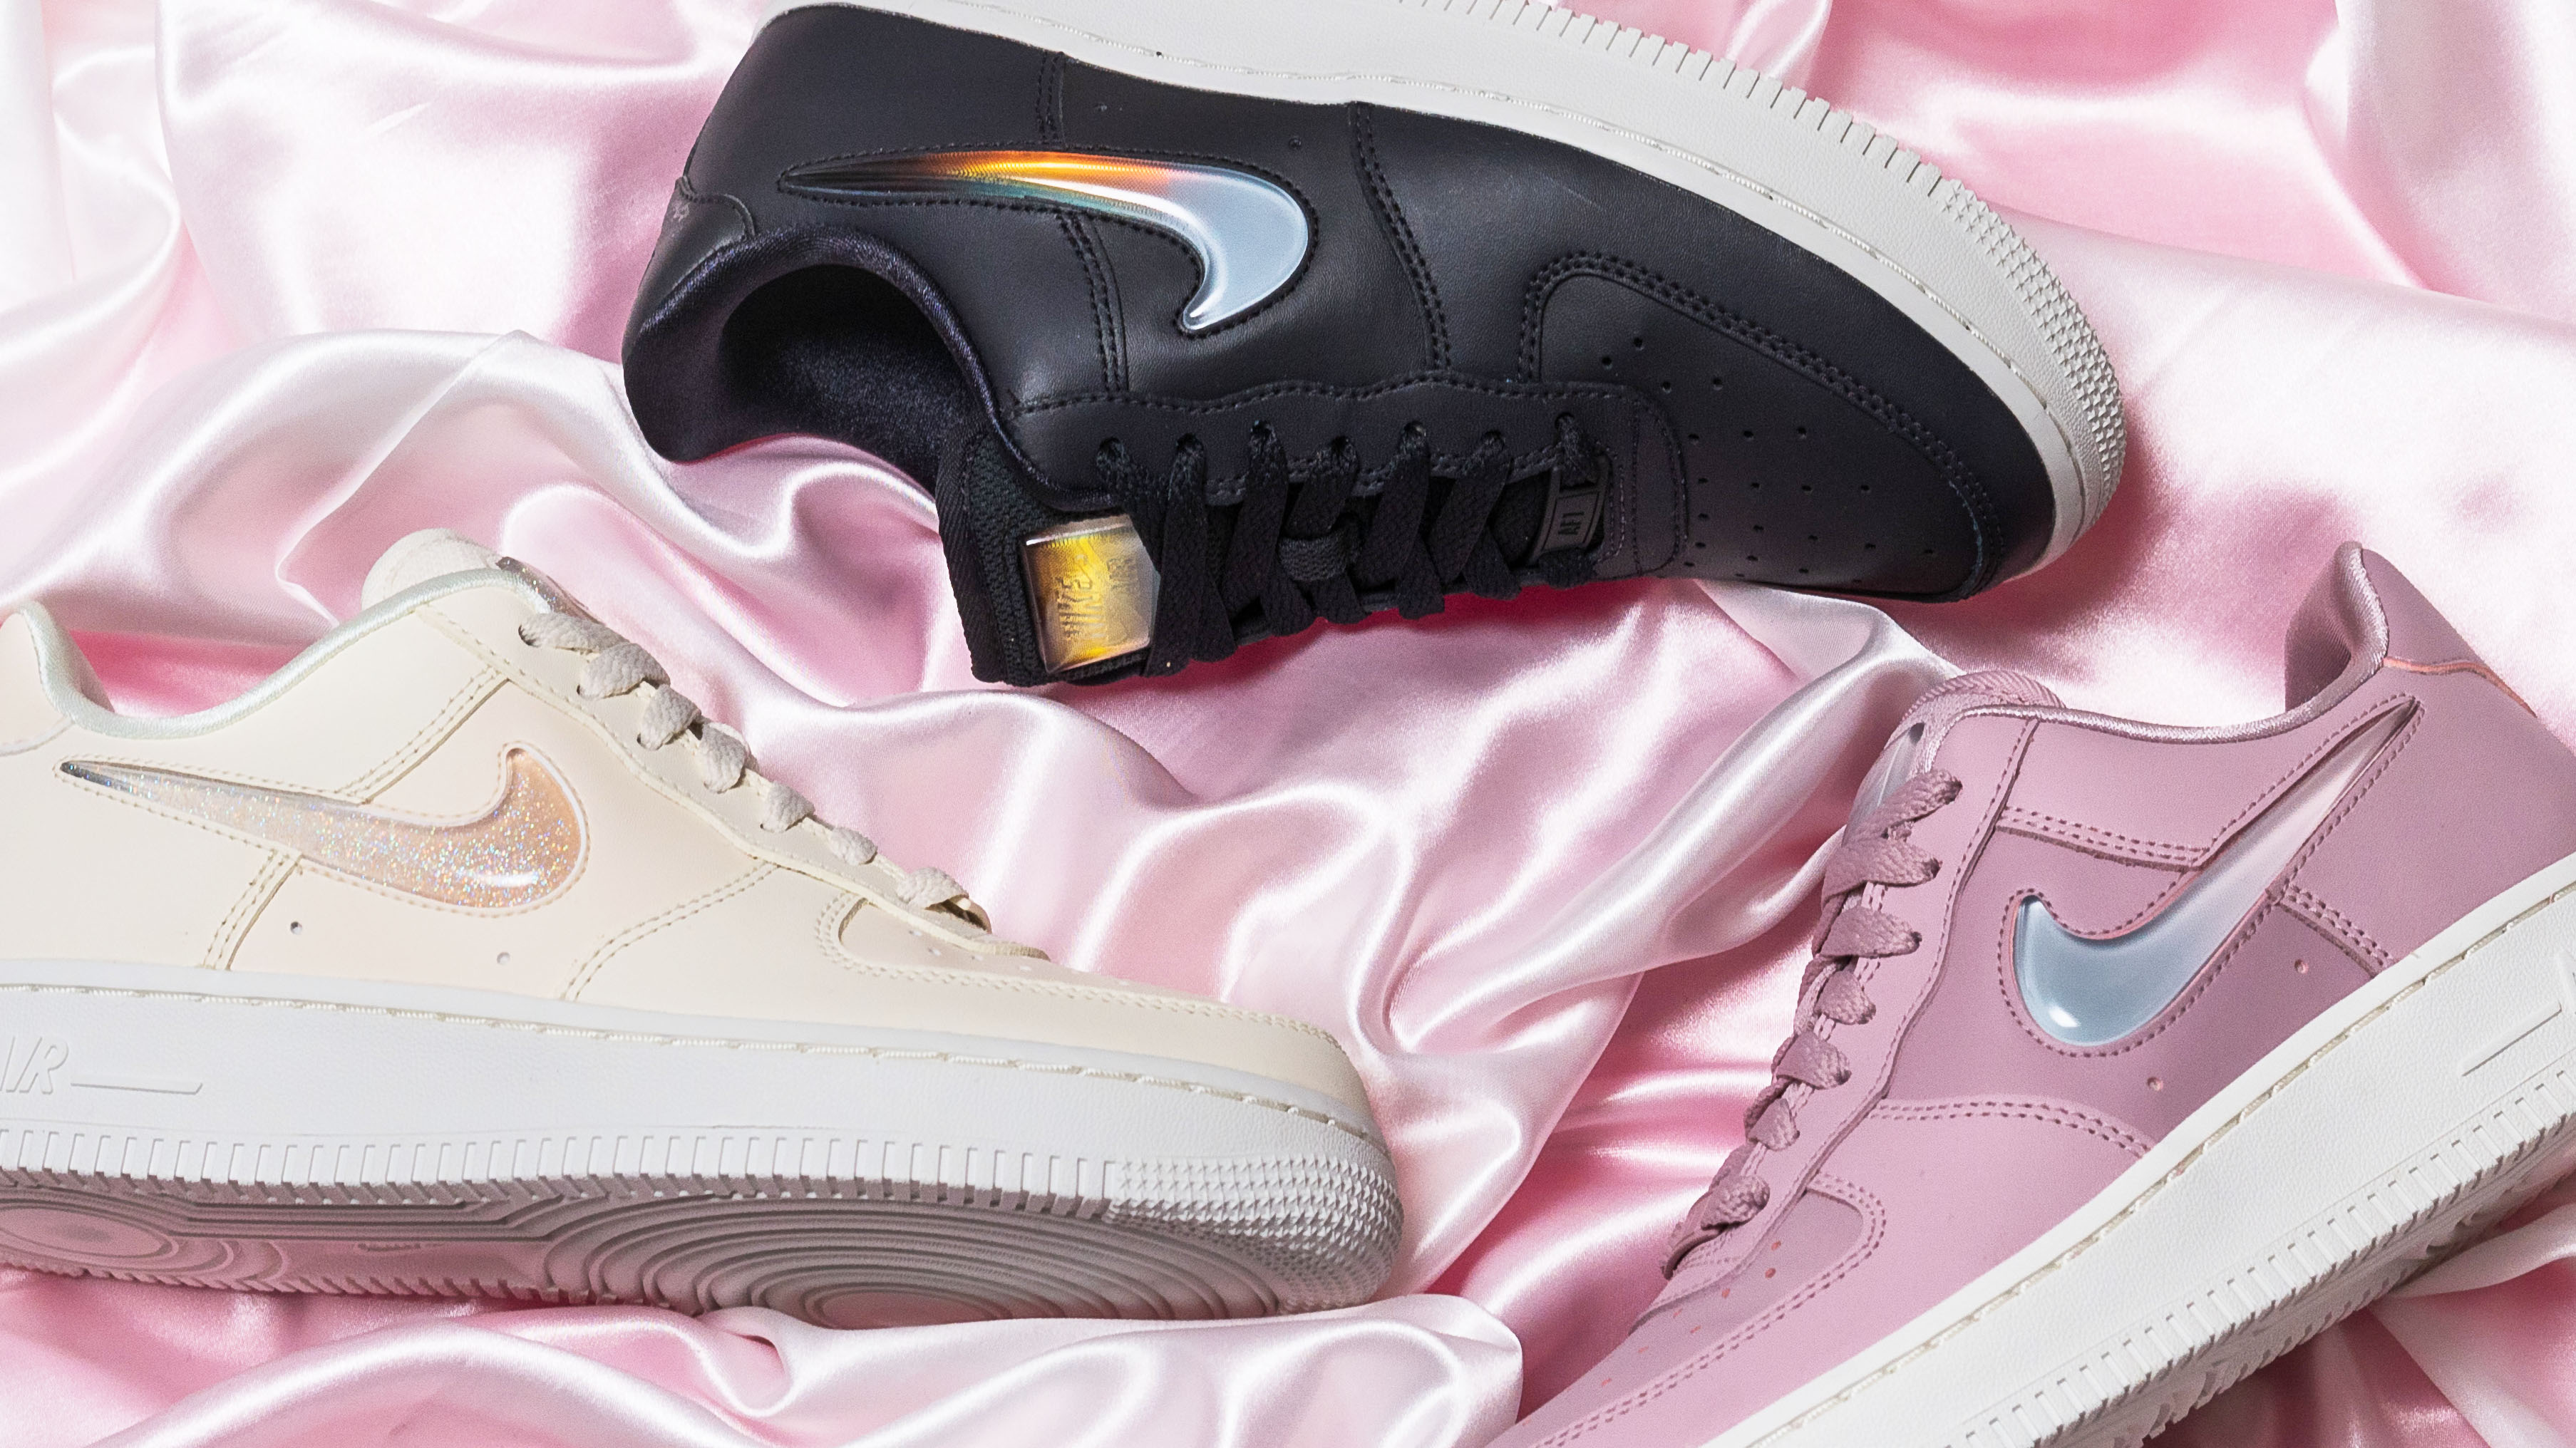 Ennegrecer Nueva llegada Shipley  Check Out The Jelly Swoosh On These Nike Air Force 1's | The Sole Womens